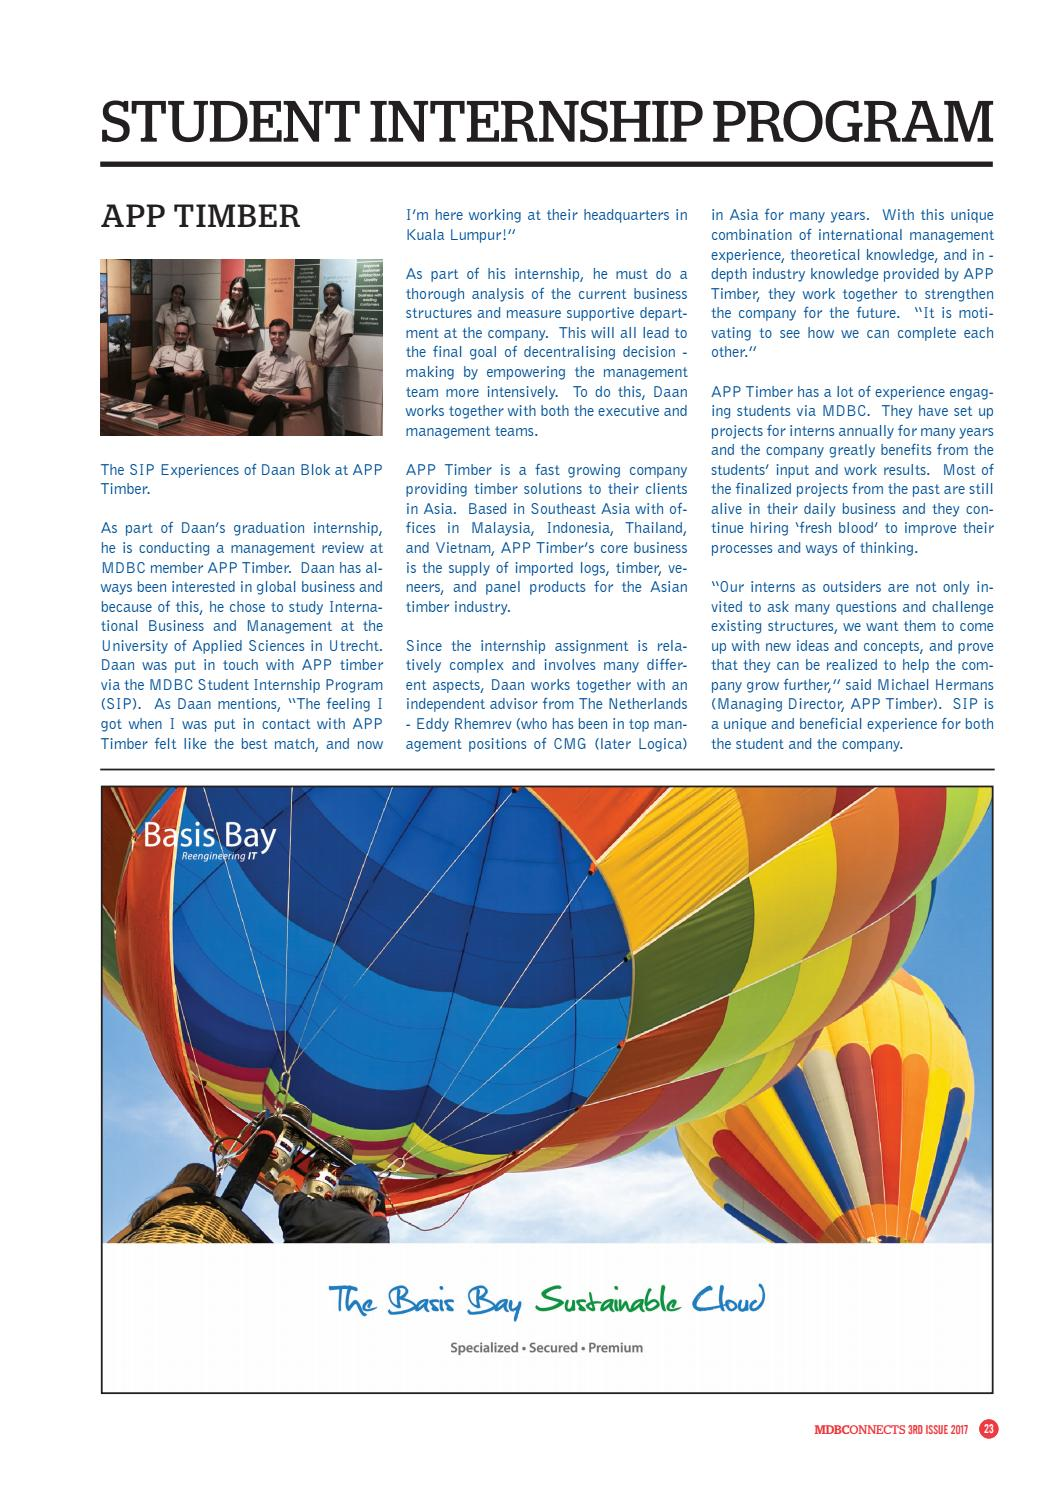 MDBCONNECTS 2017 - 3 by Malaysian Dutch Business Council - issuu